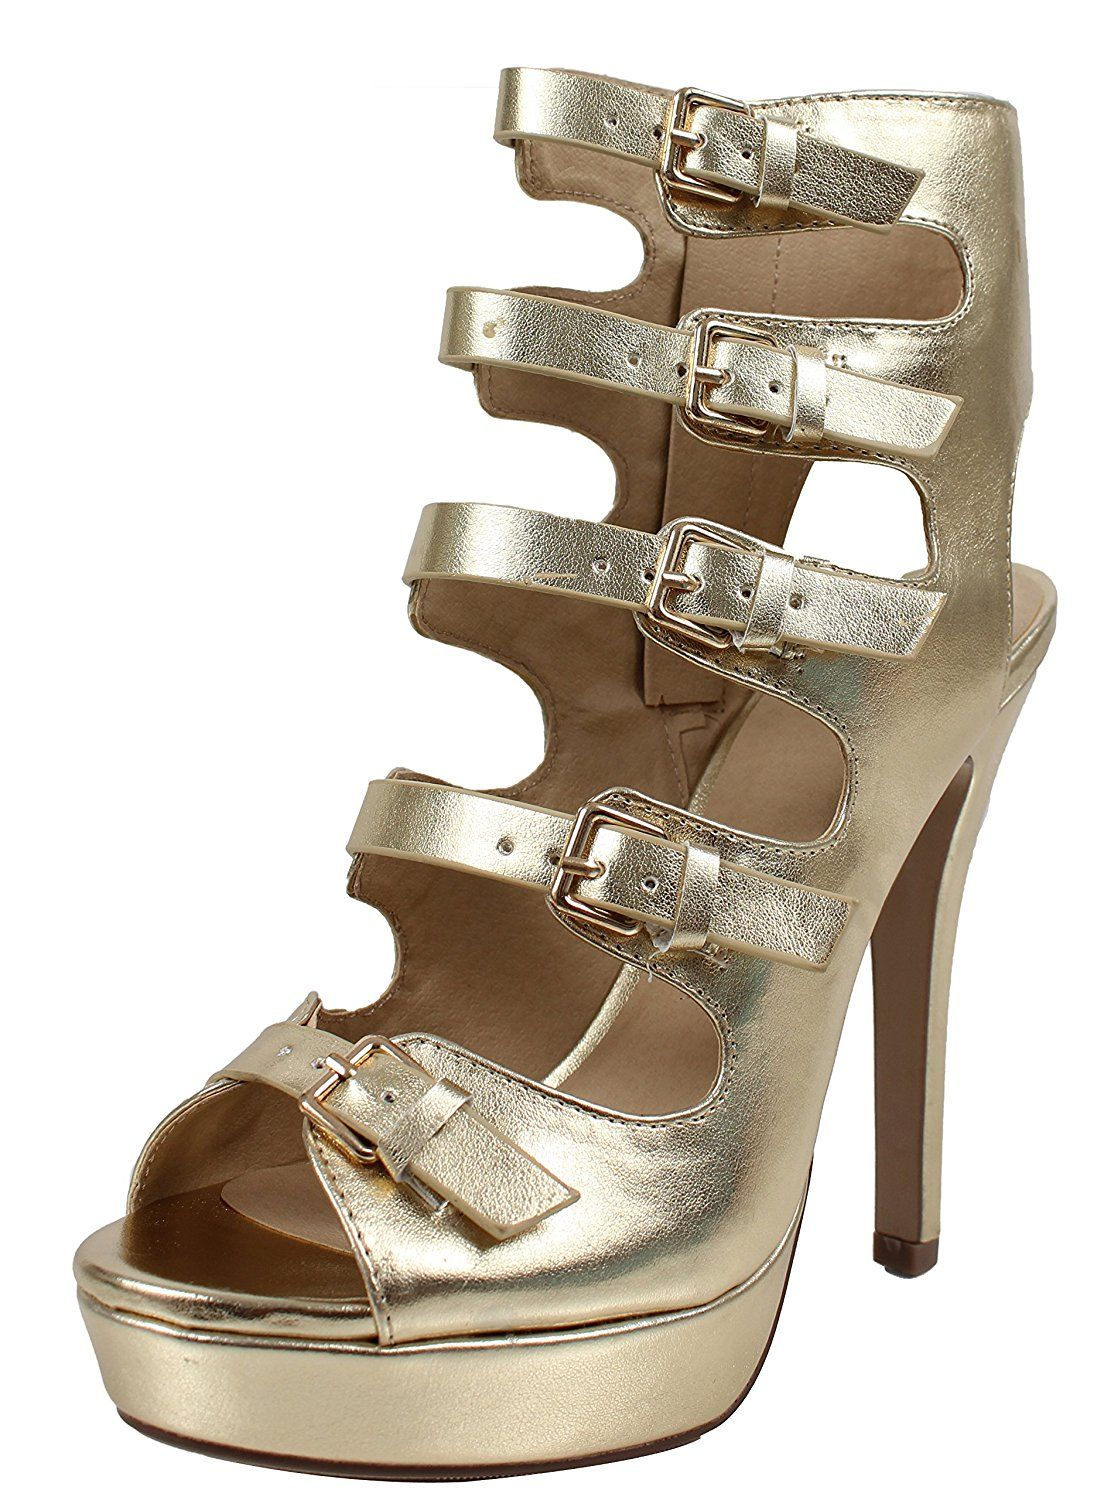 8247434830d Delicious Women s Open Toe Multi Strappy Open Back Platform High Heel  Sandals    Click on the image for additional details. (This is an affiliate  link)   ...